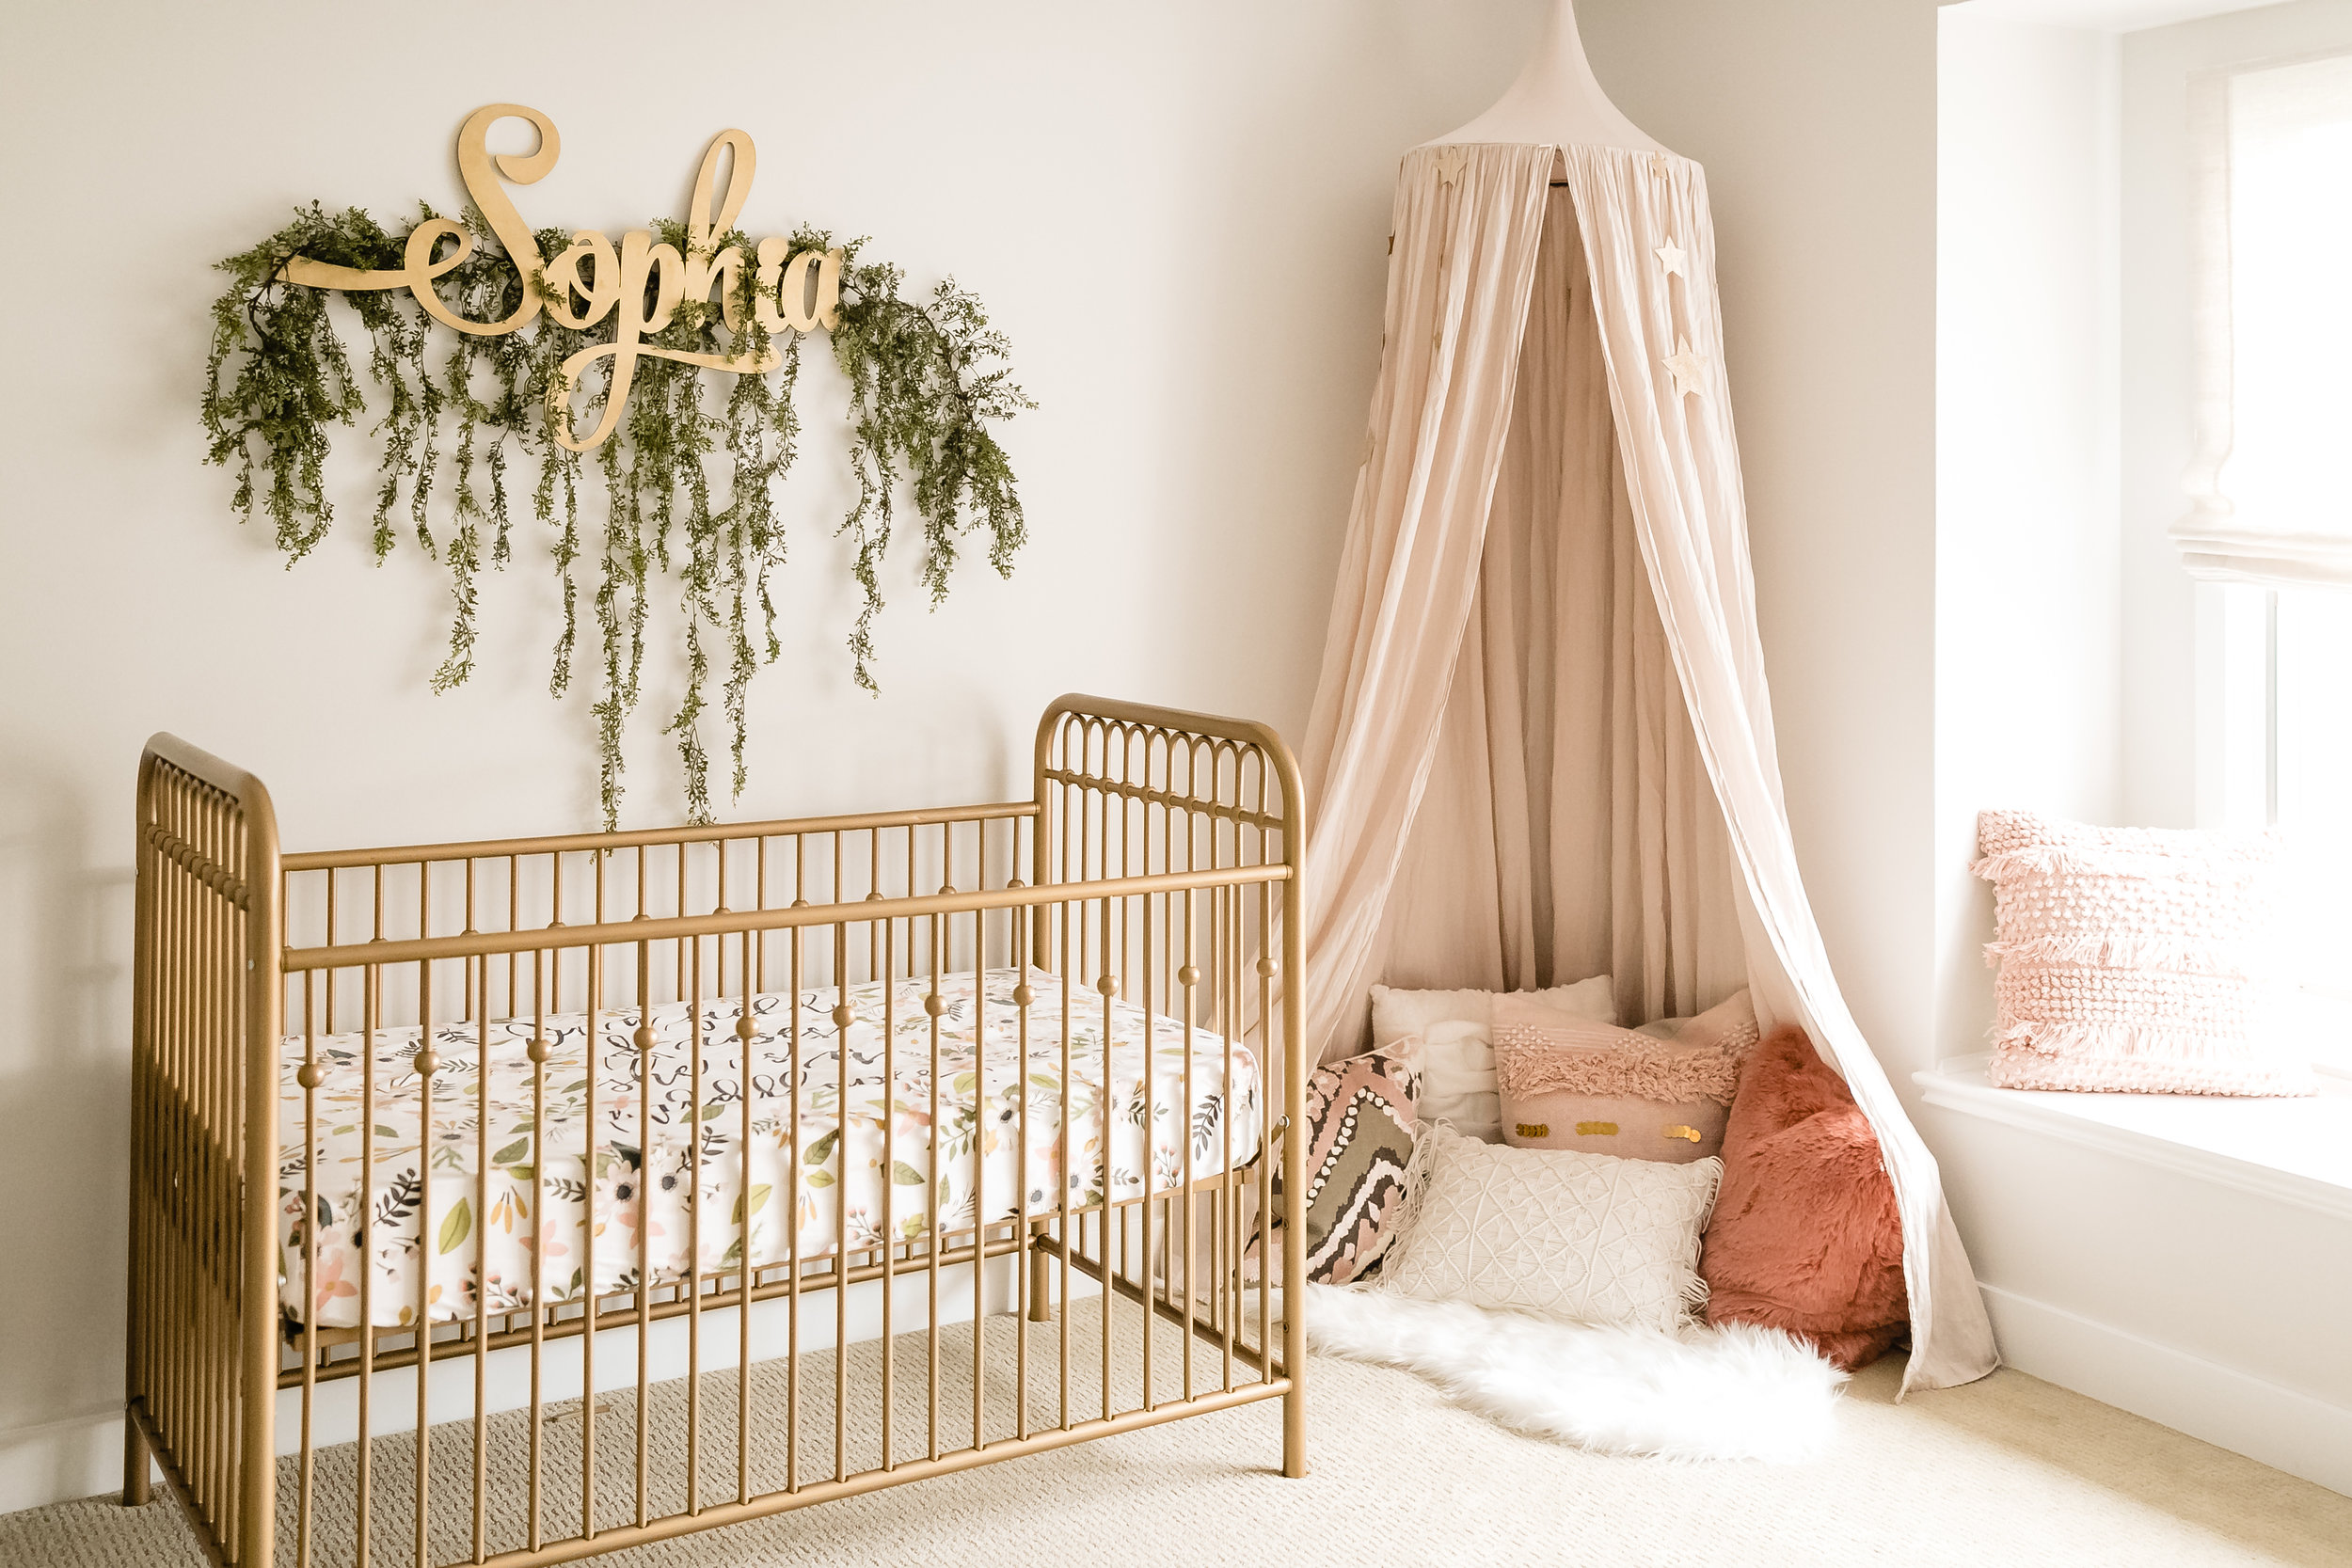 chicago newborn girl nursery pale pink boho chic organic interior design style